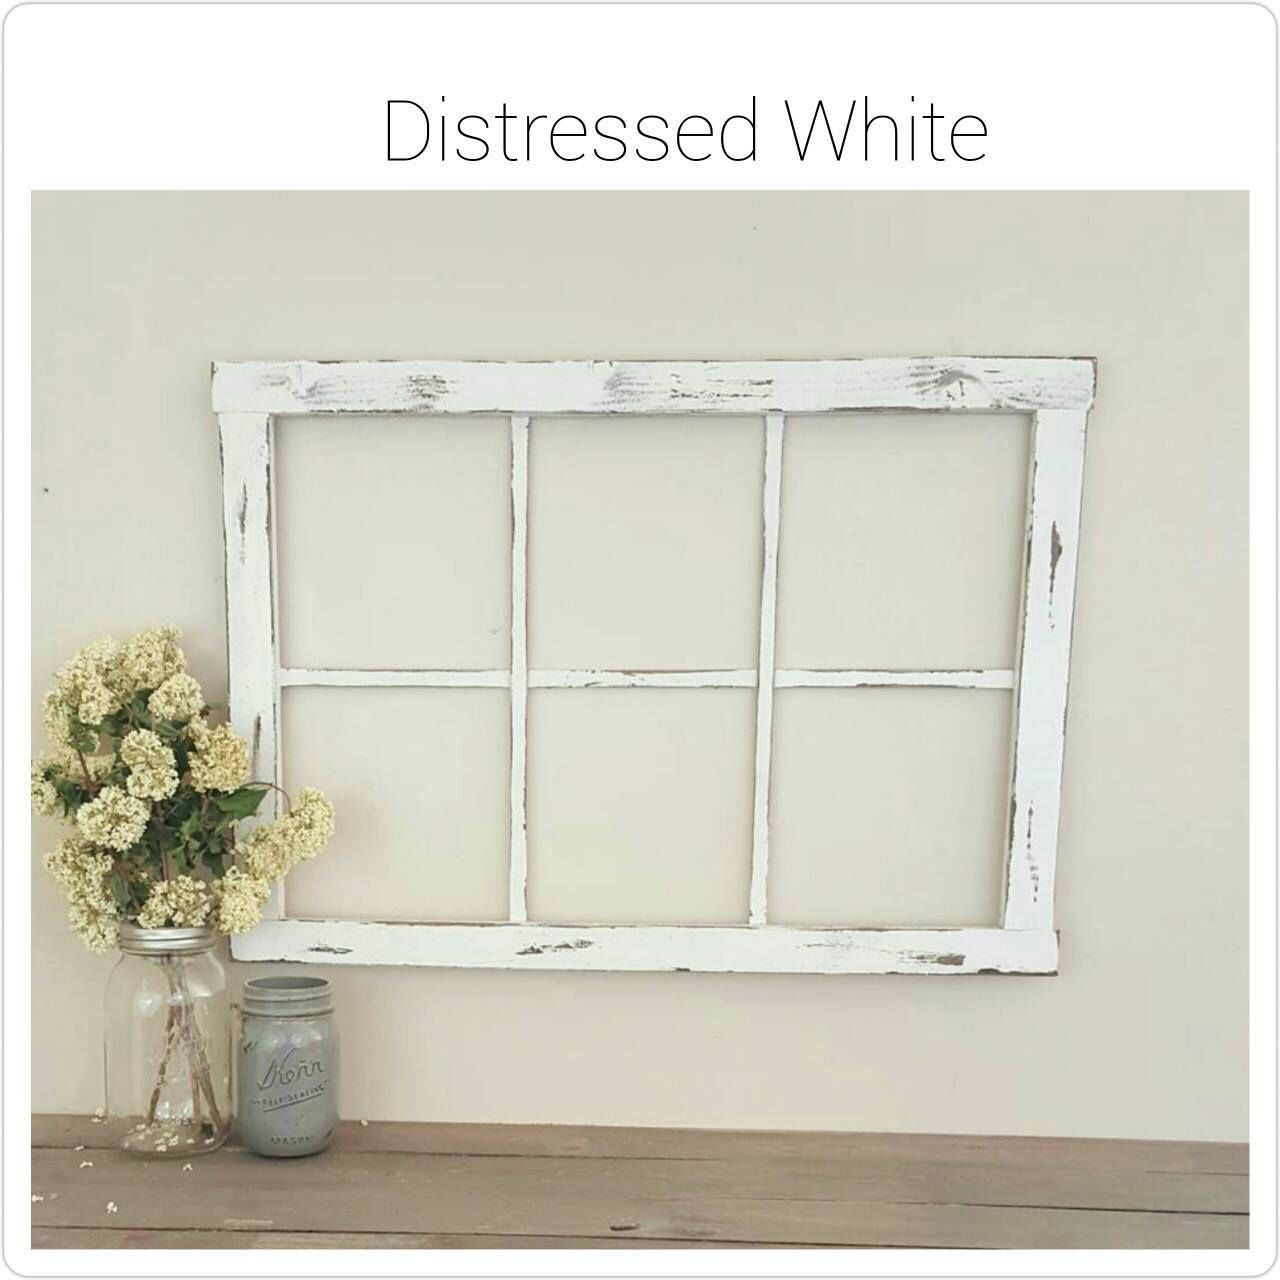 6 pane window frame ideas  this  pane made to look faux vintage window frame is the perfect